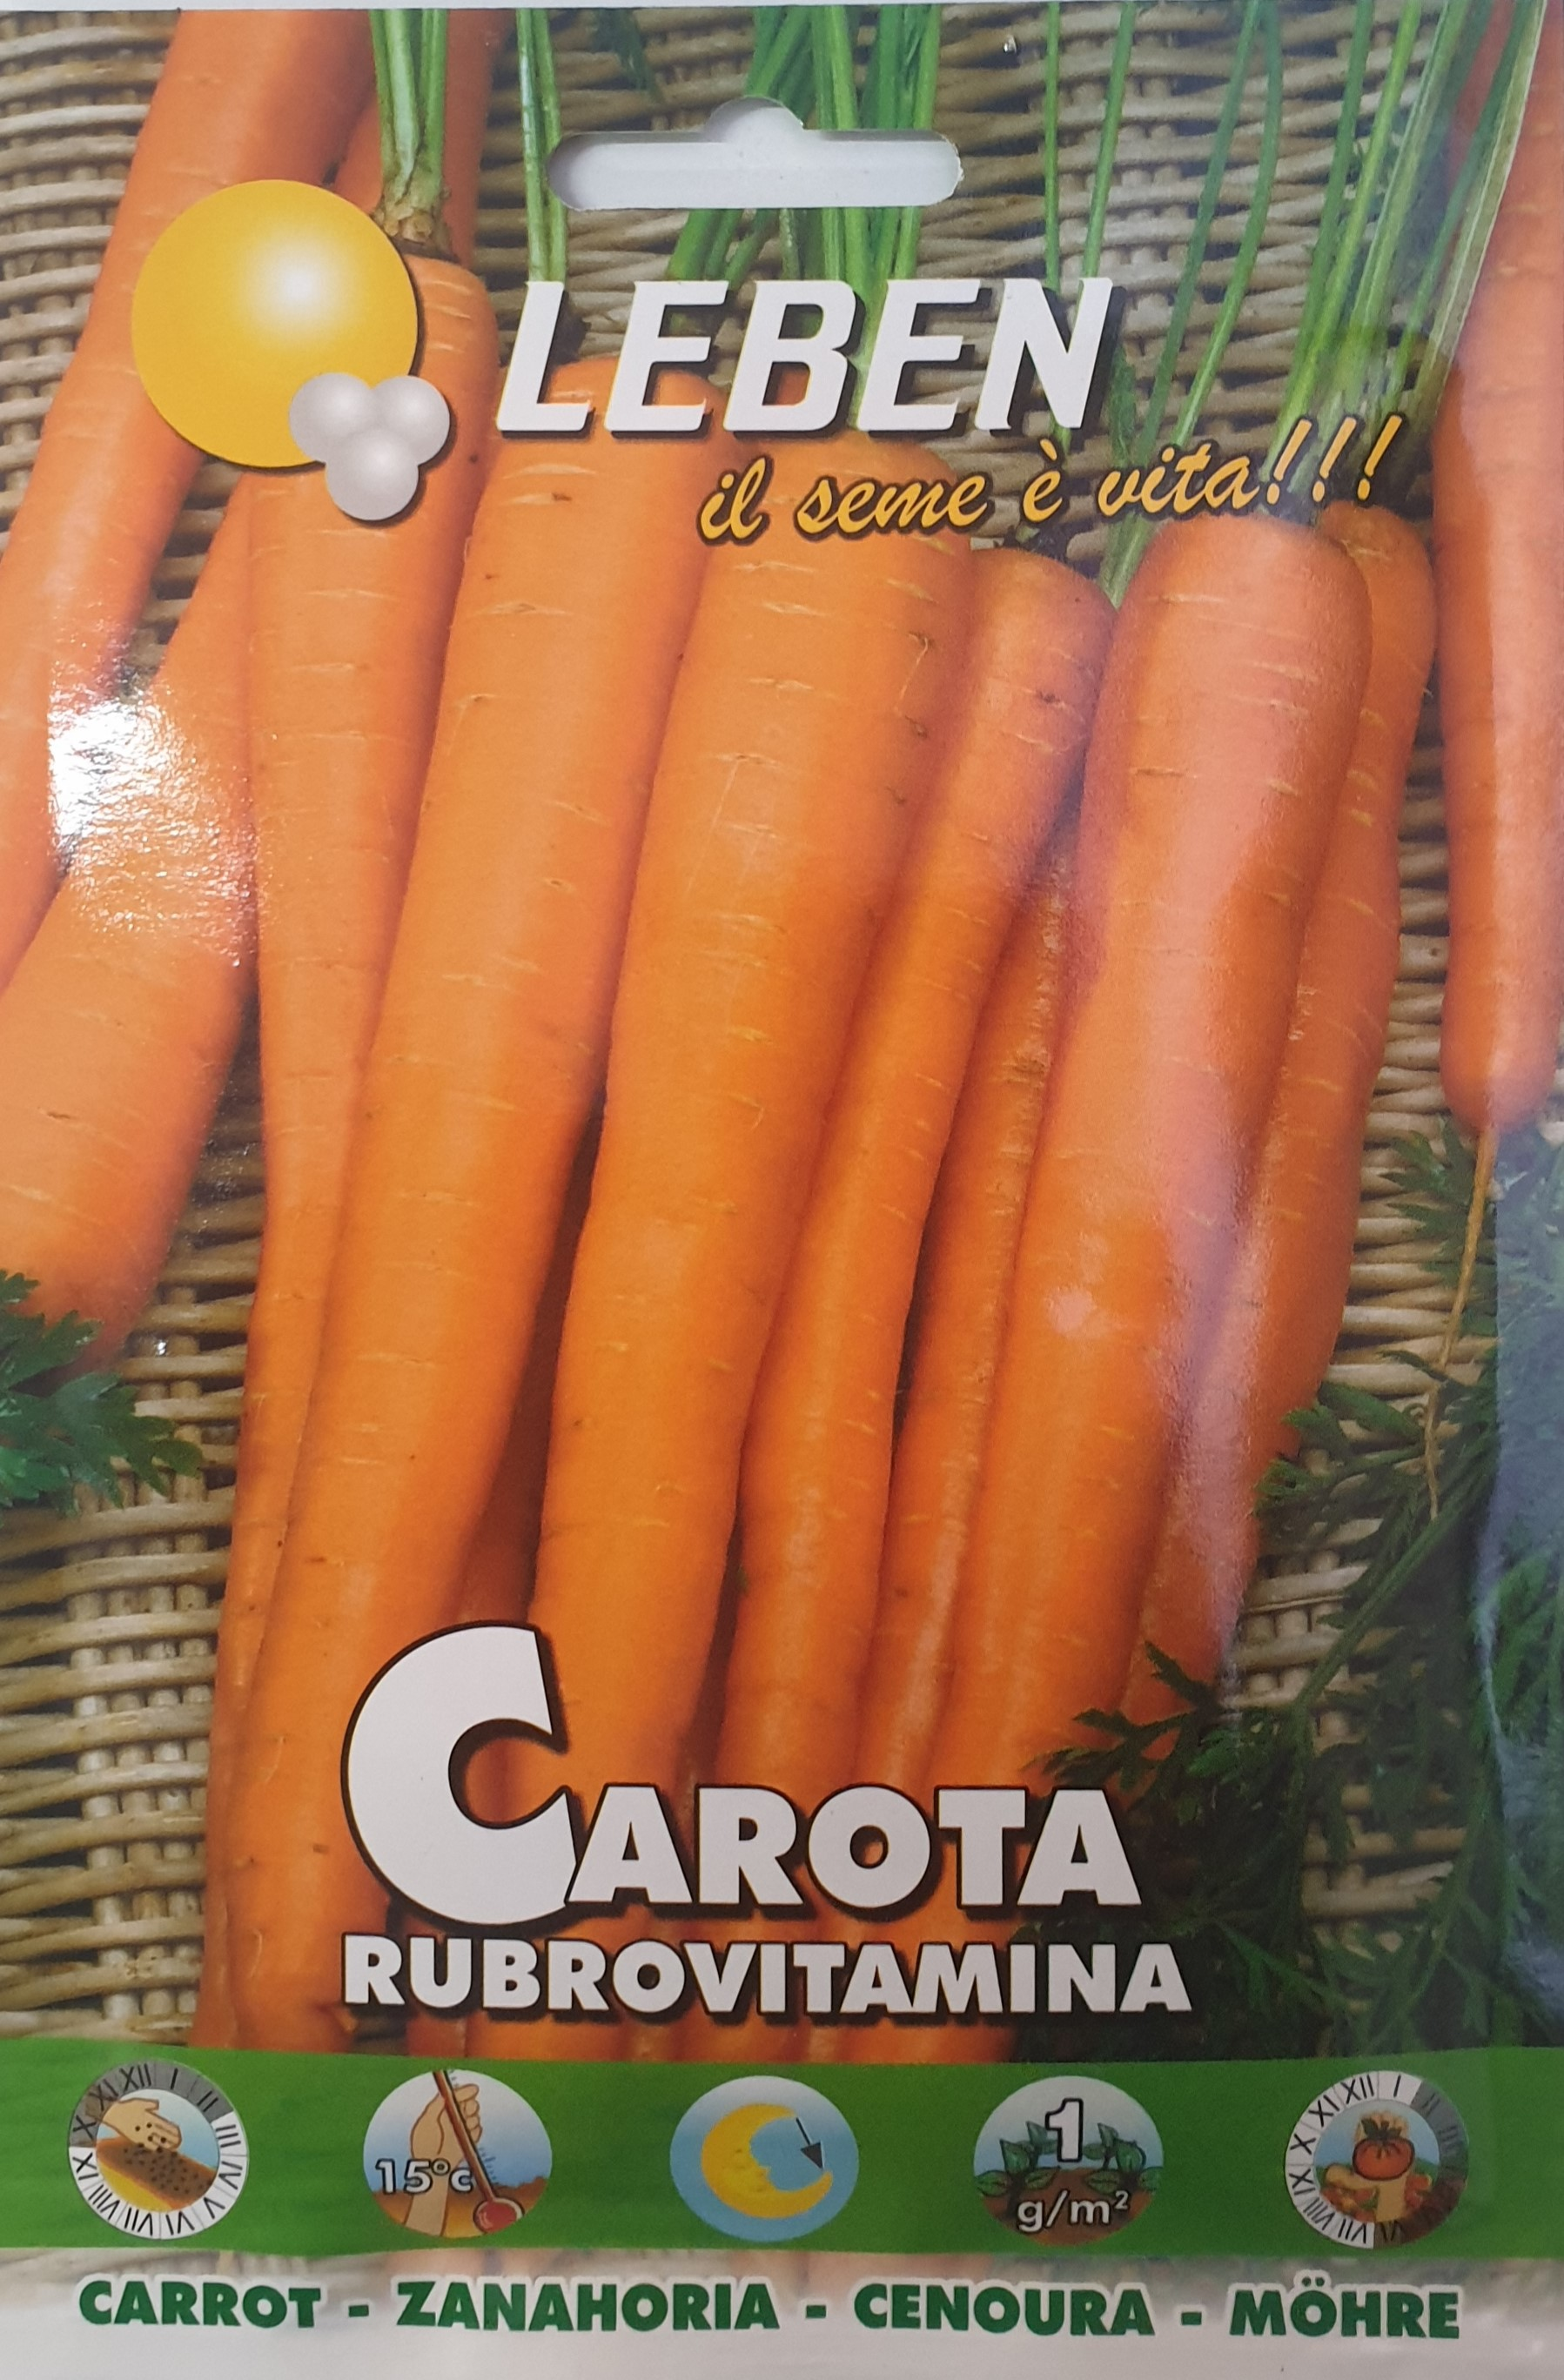 Carrot Rubrovitamina Leben Alpine Seeds by Franchi